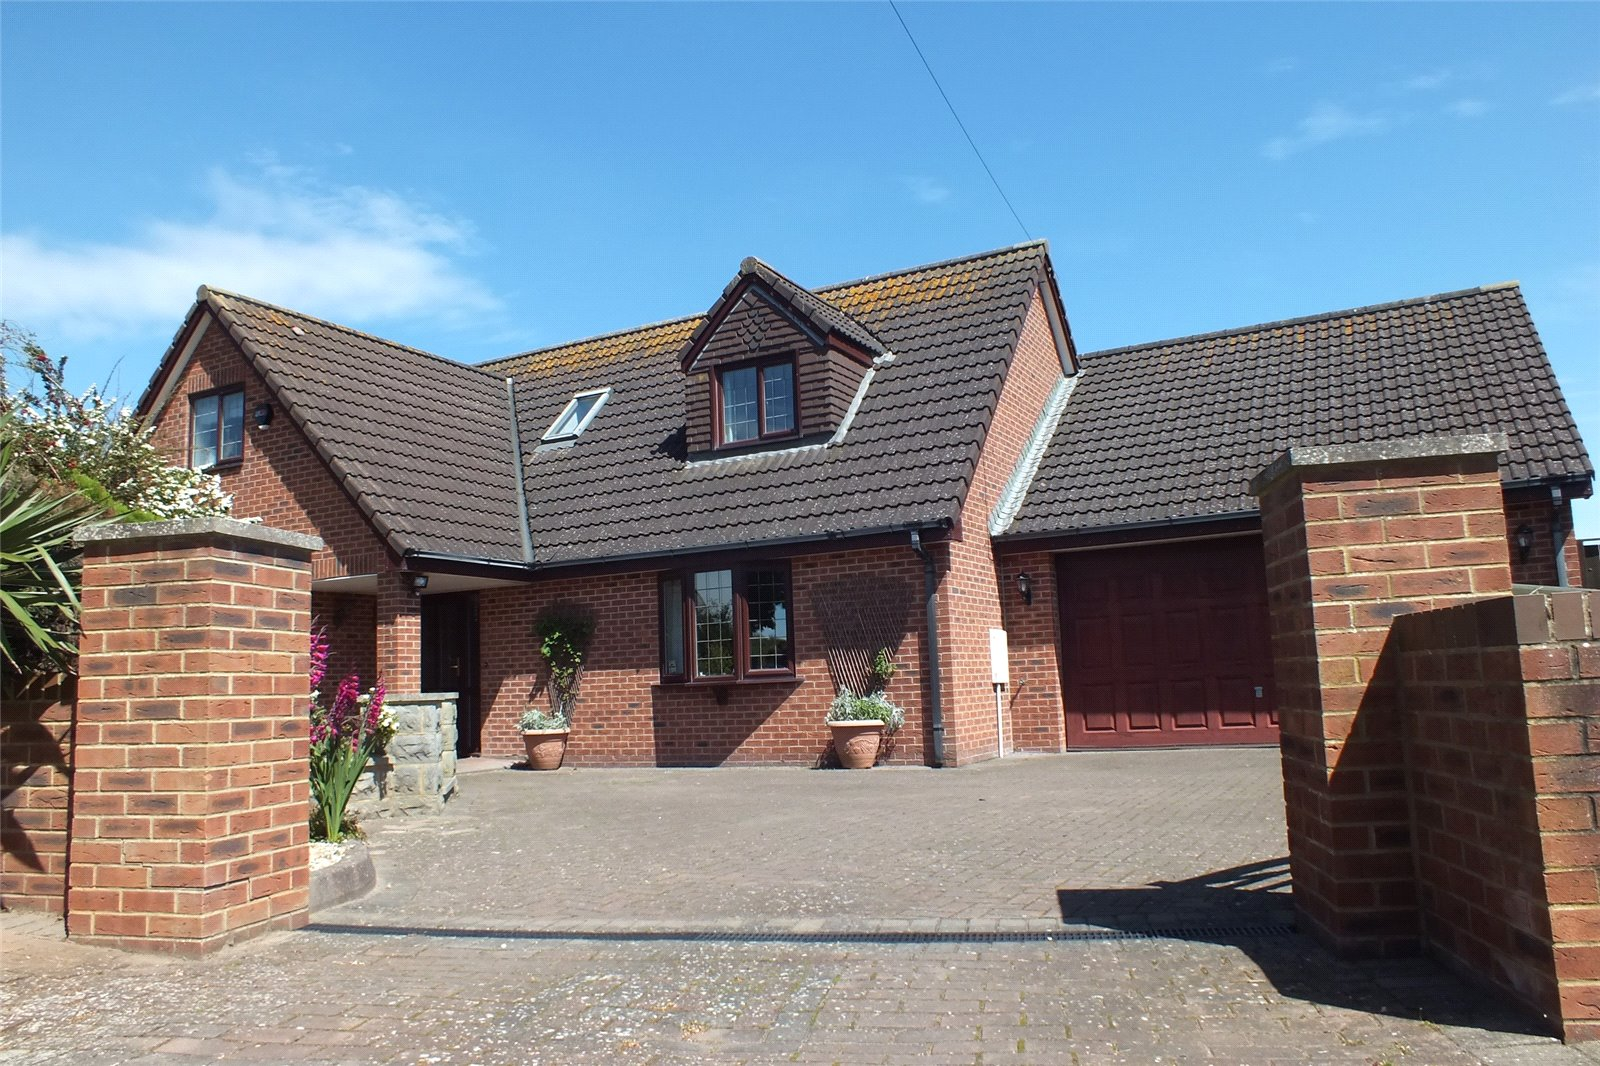 4 Bedrooms Detached House for sale in Shrubbery Close Coast Road Berrow TA8